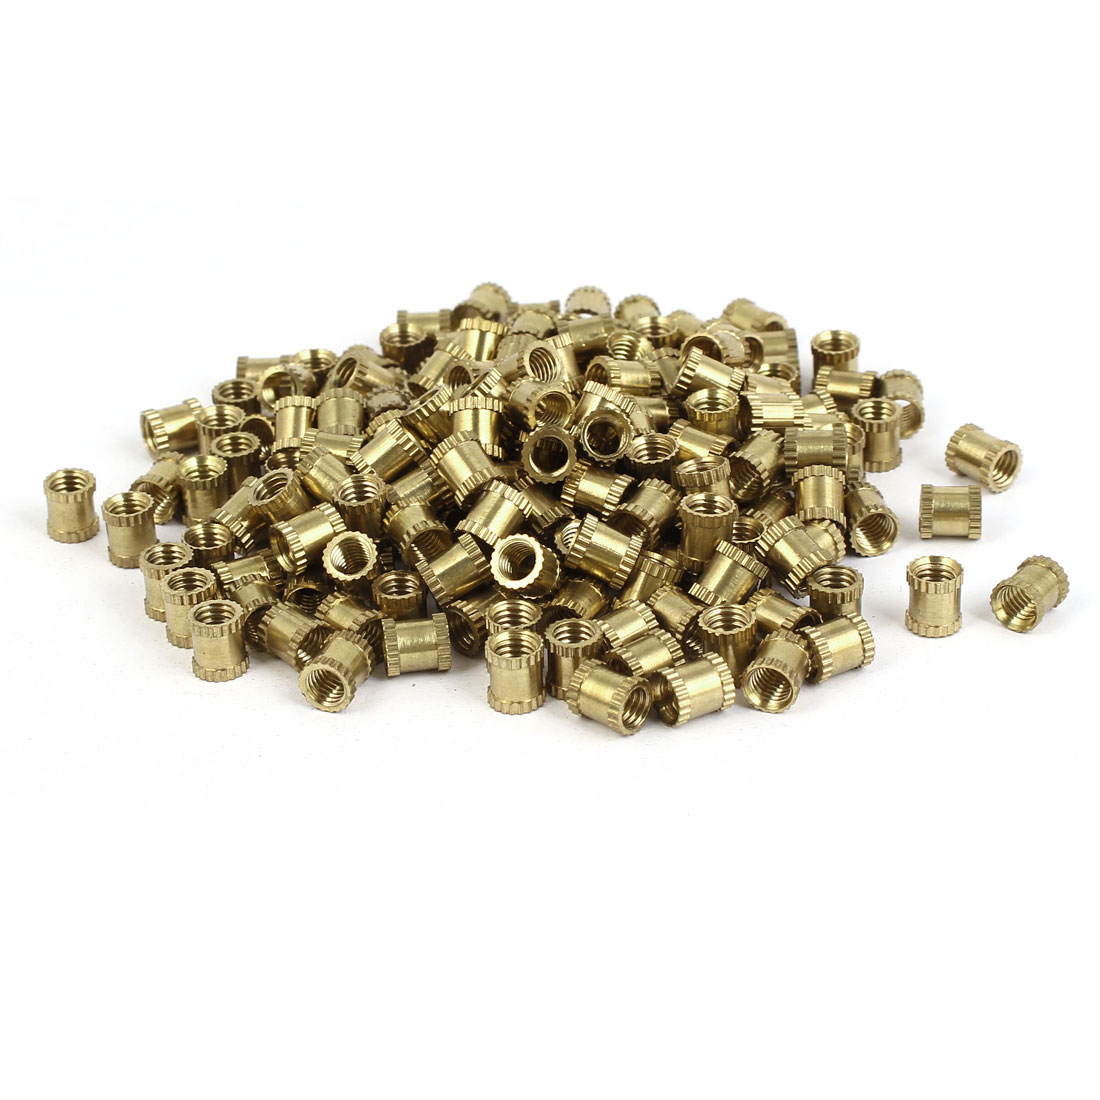 M5 x 7mm Female Thread Brass Knurled Threaded Round Insert Embedded Nuts 200PCS